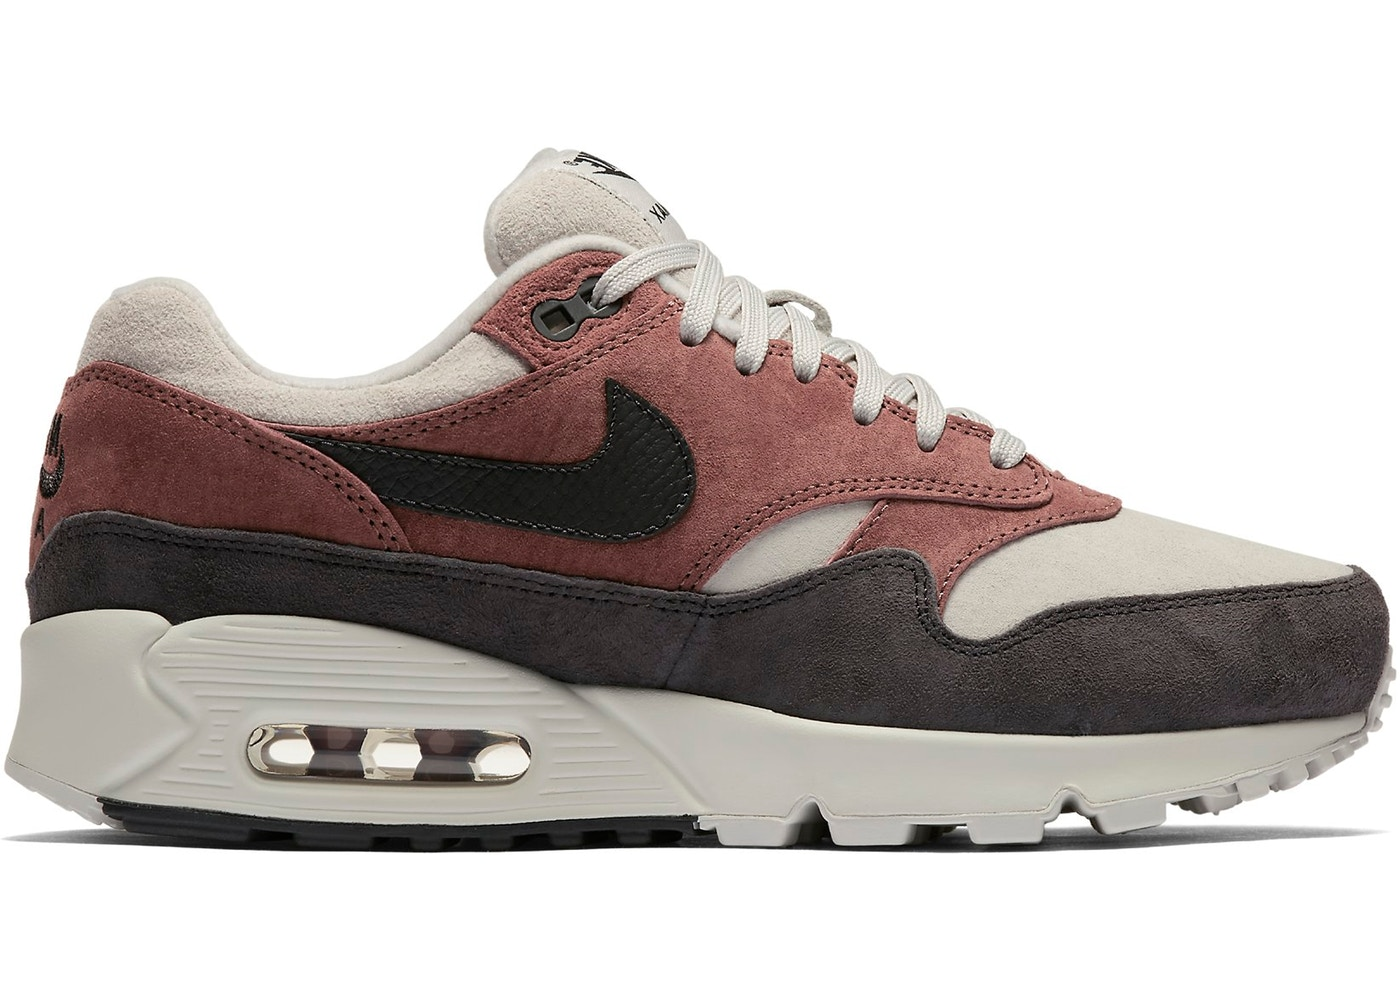 4db2d6a953 Sell. or Ask. Size: 10.5W. View All Bids. Air Max 90/1 Red Sepia Oil Grey  ...